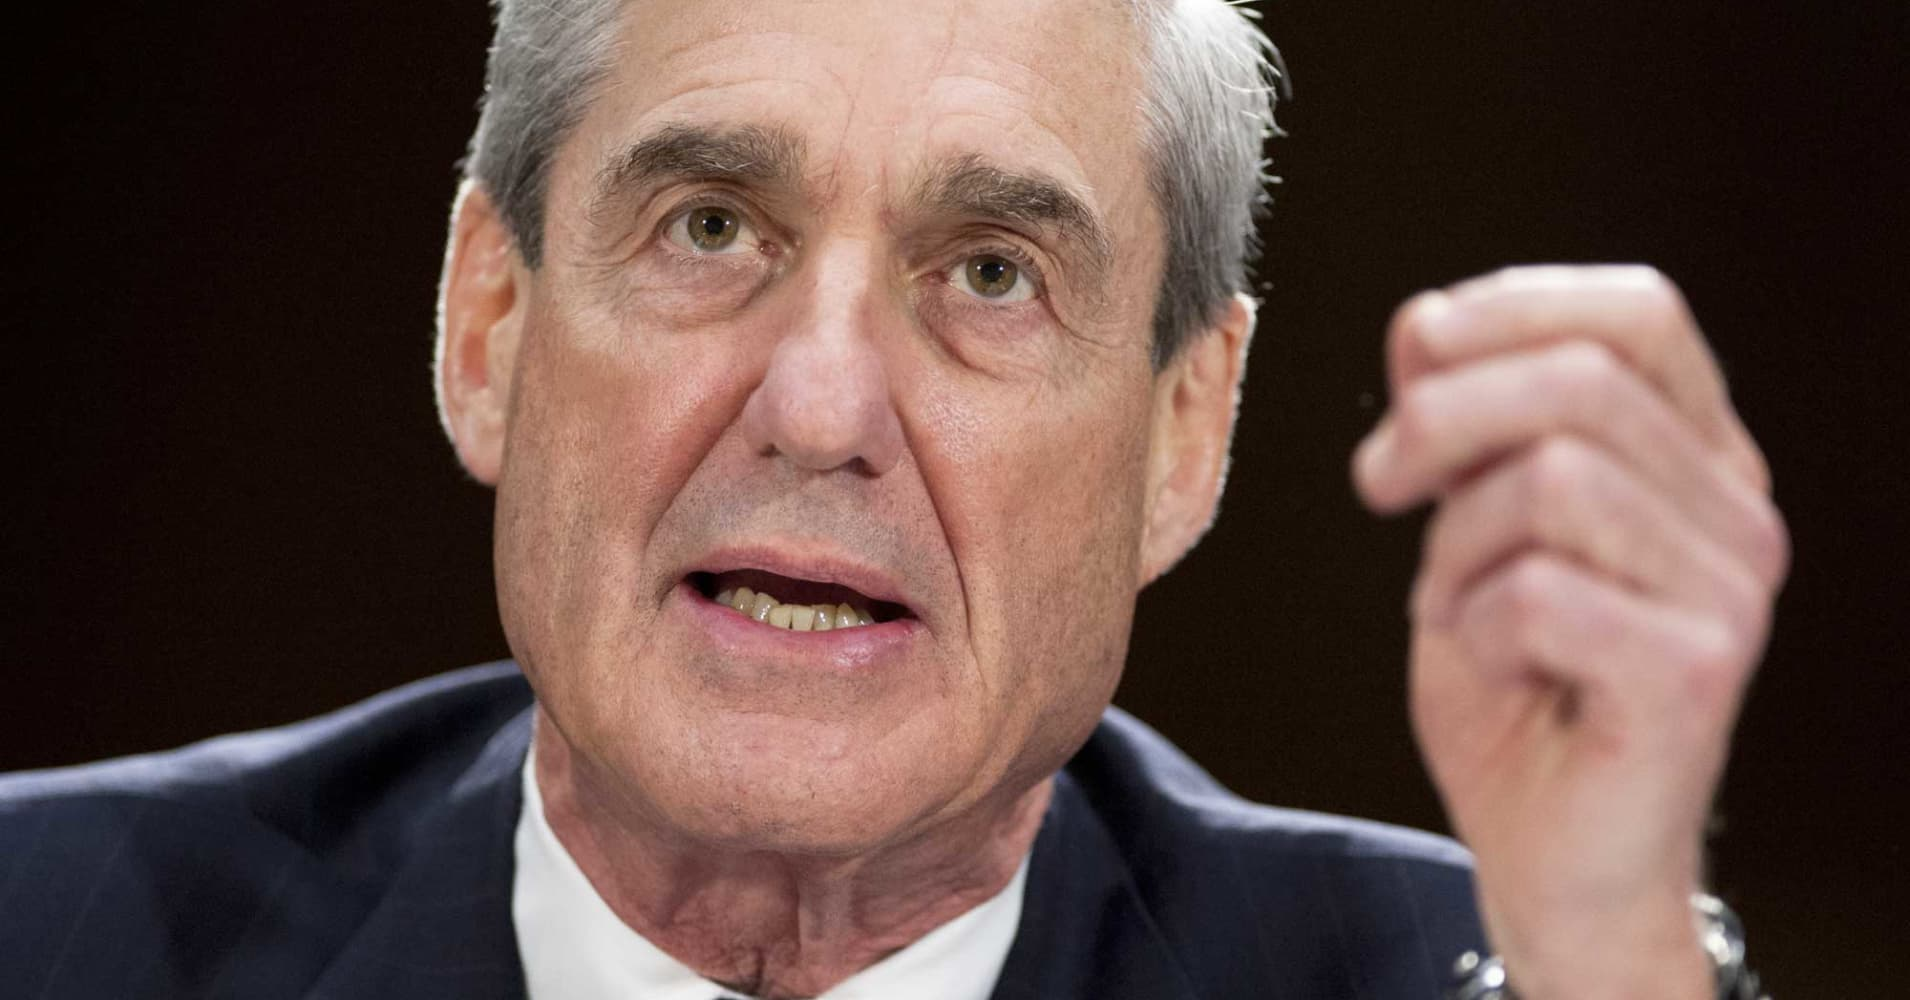 Mystery foreign company continues court battle over possible Mueller subpoena